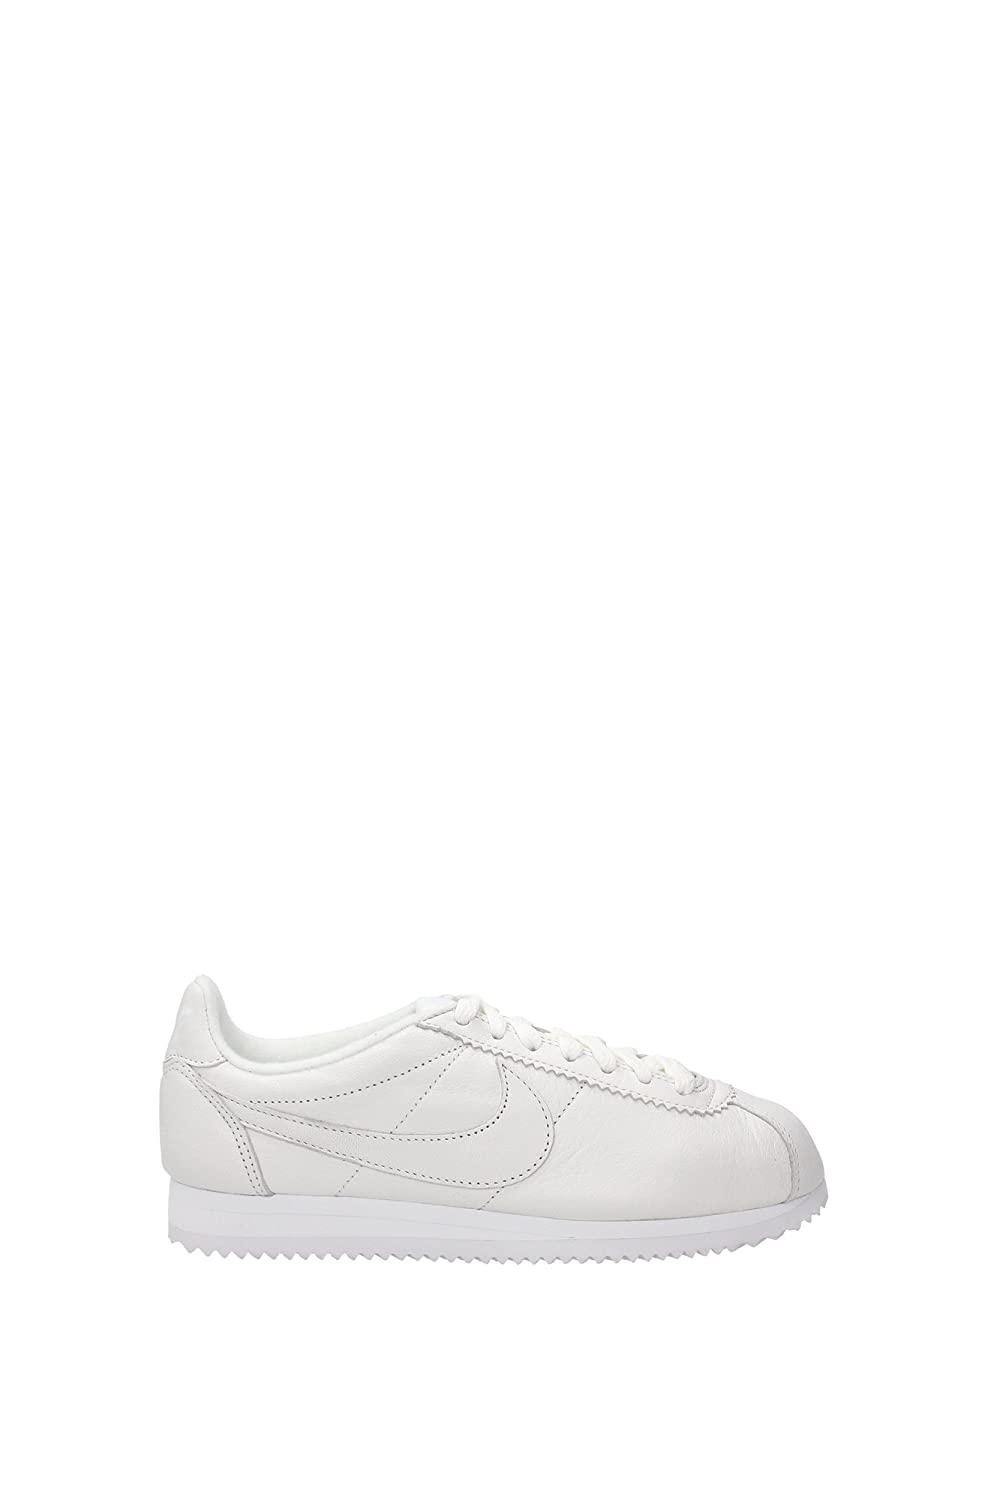 Nike Girls' W Classic Cortez Leather Prem Competition Running Shoes: Amazon. co.uk: Shoes & Bags